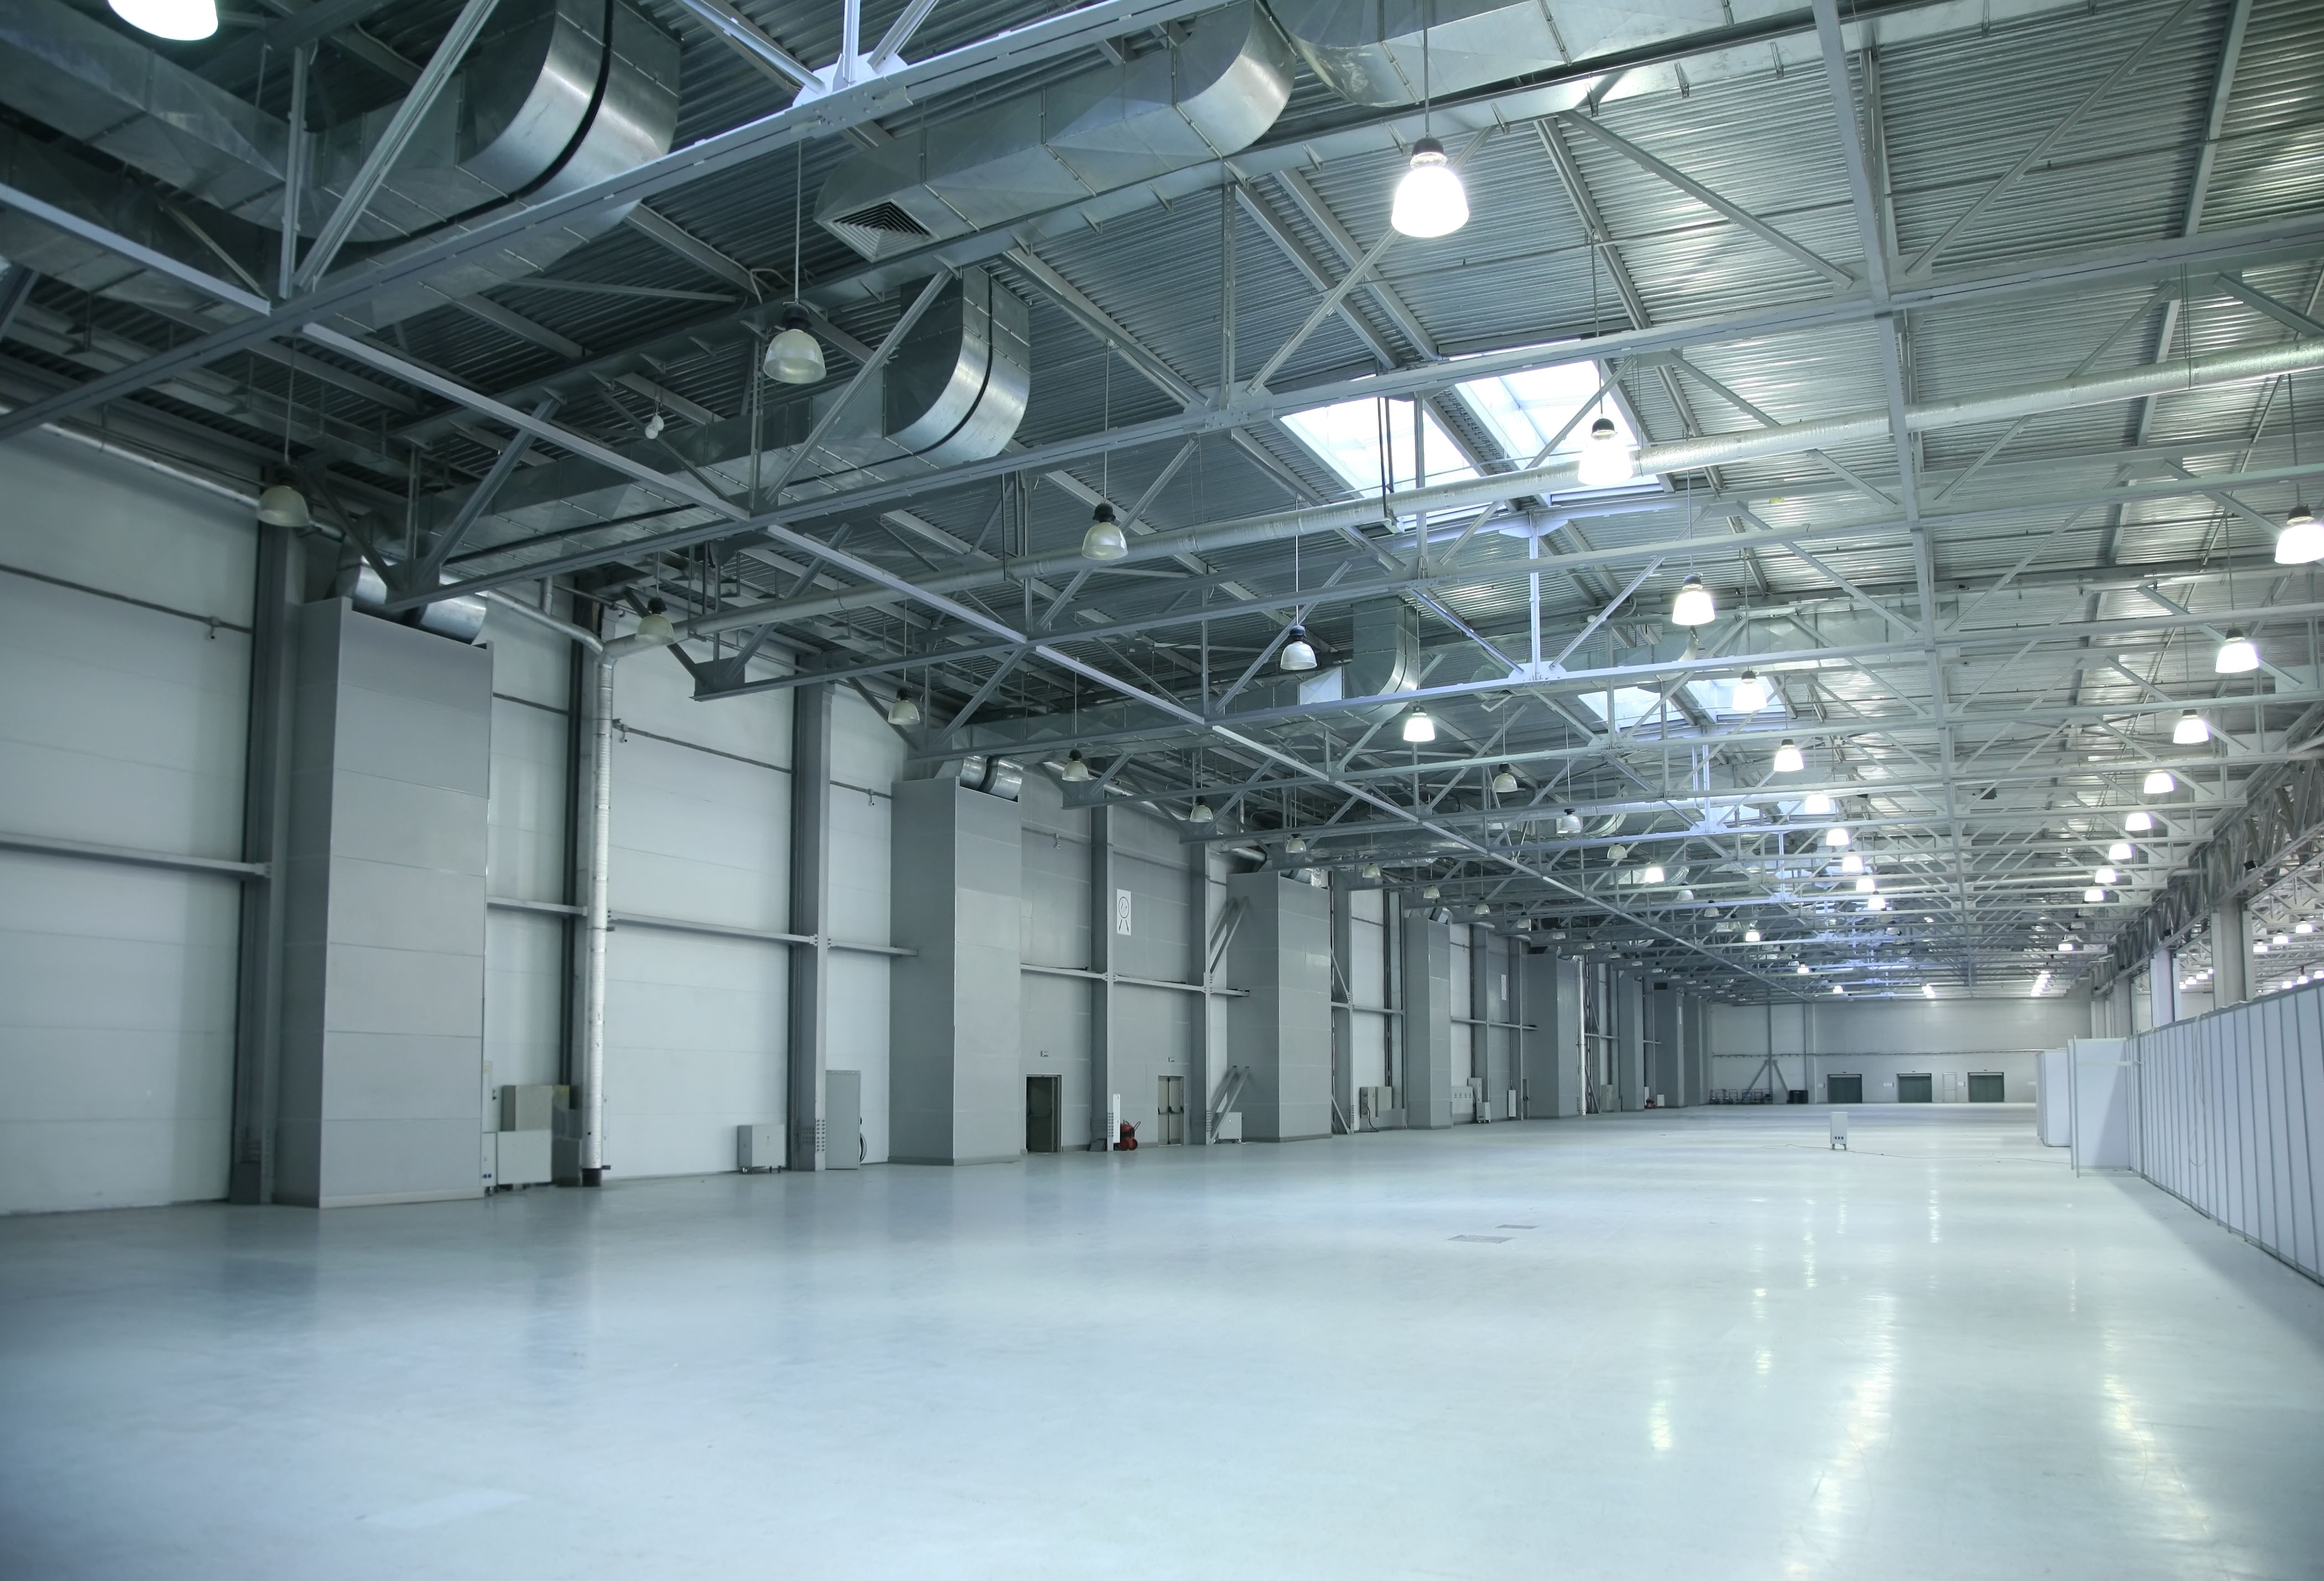 Food Plant Sanitation: Choosing Flooring, Walls, Ceilings and Doors to Improve Food Safety